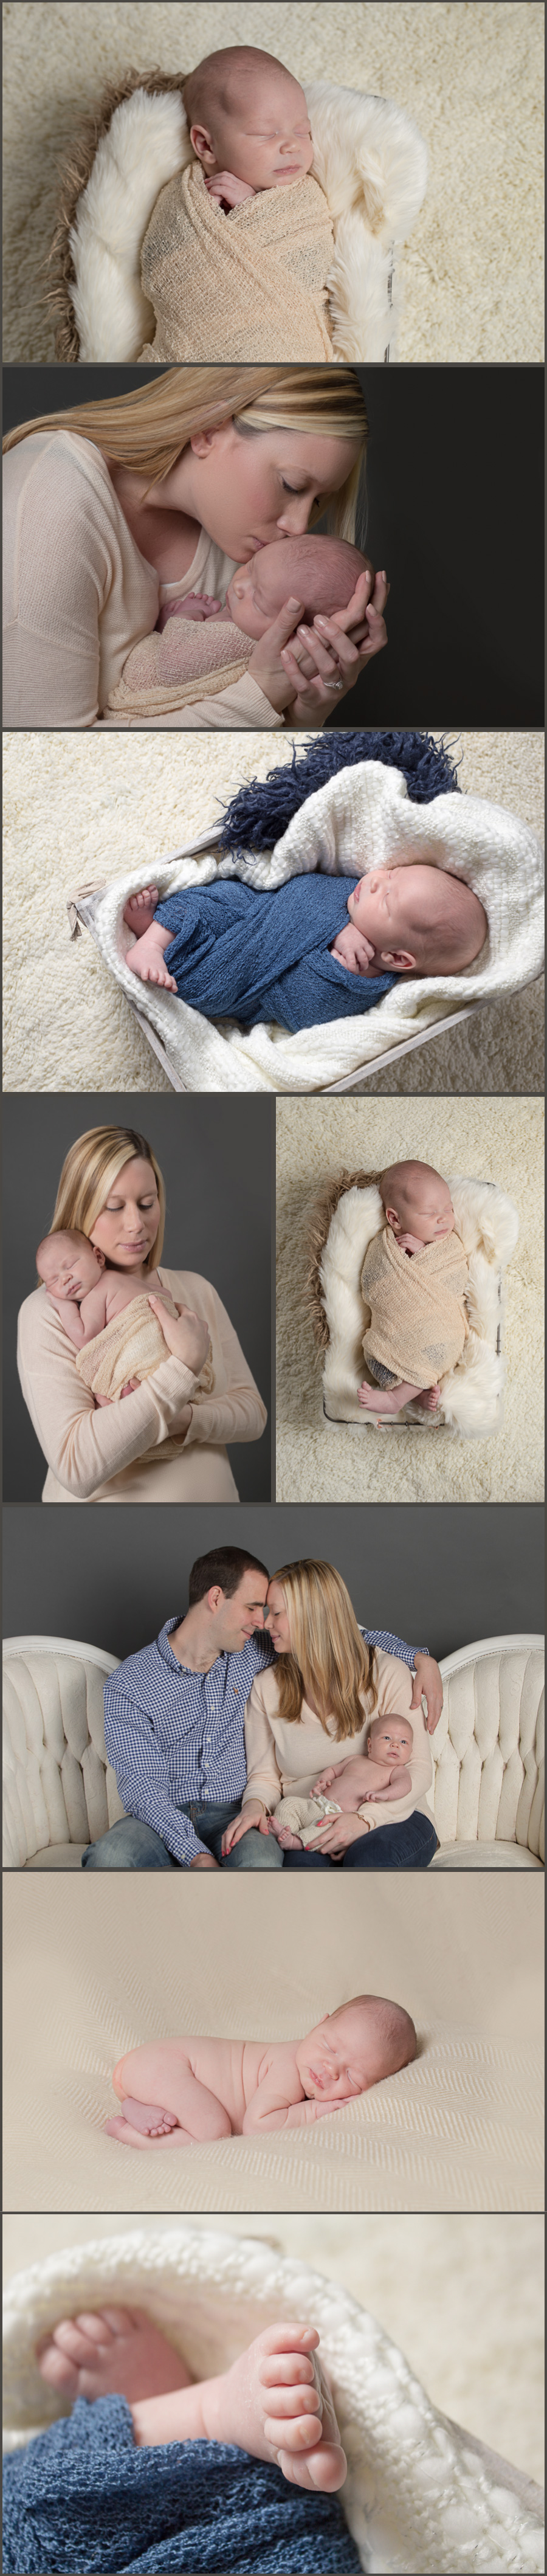 David's Newborn Portraits